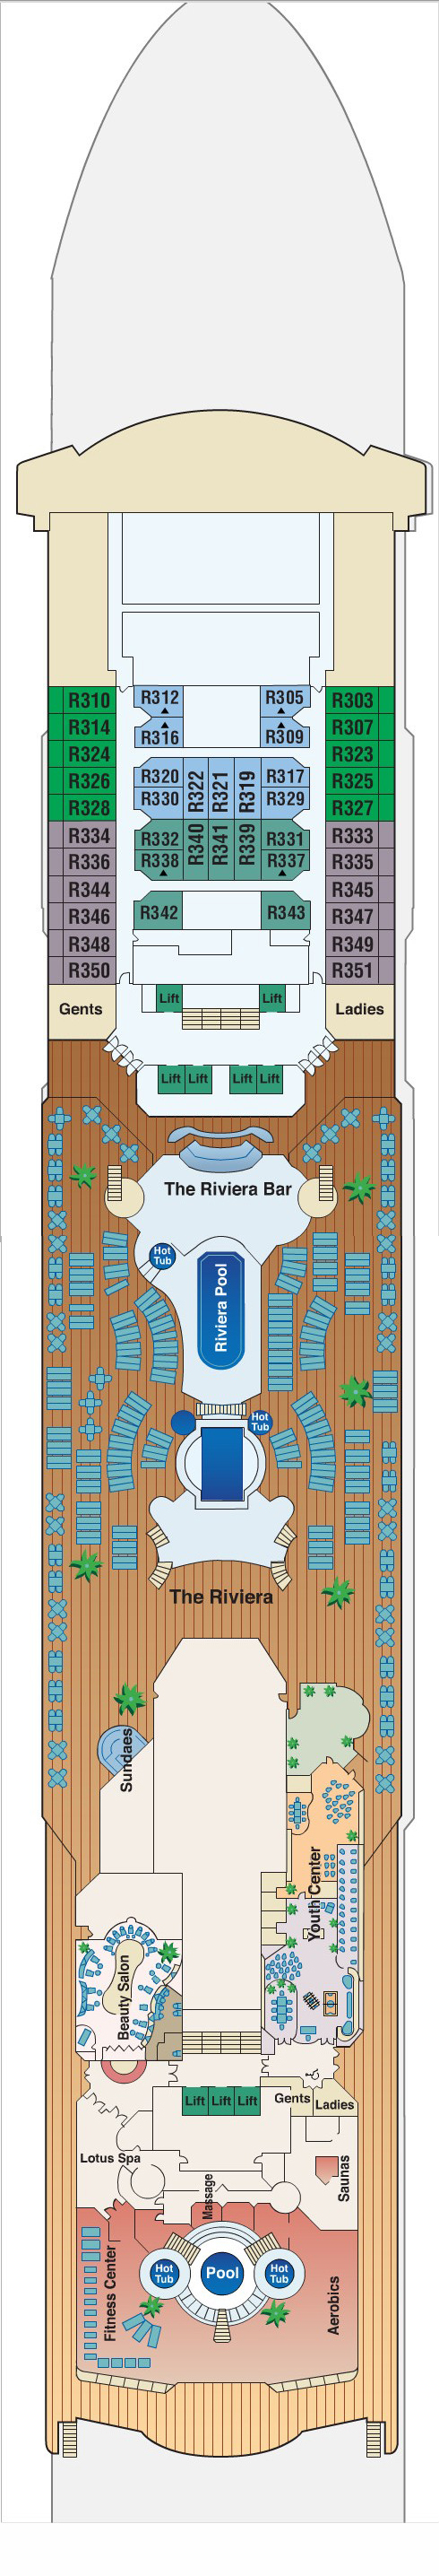 Sea Princess Riviera Deck 12 layout